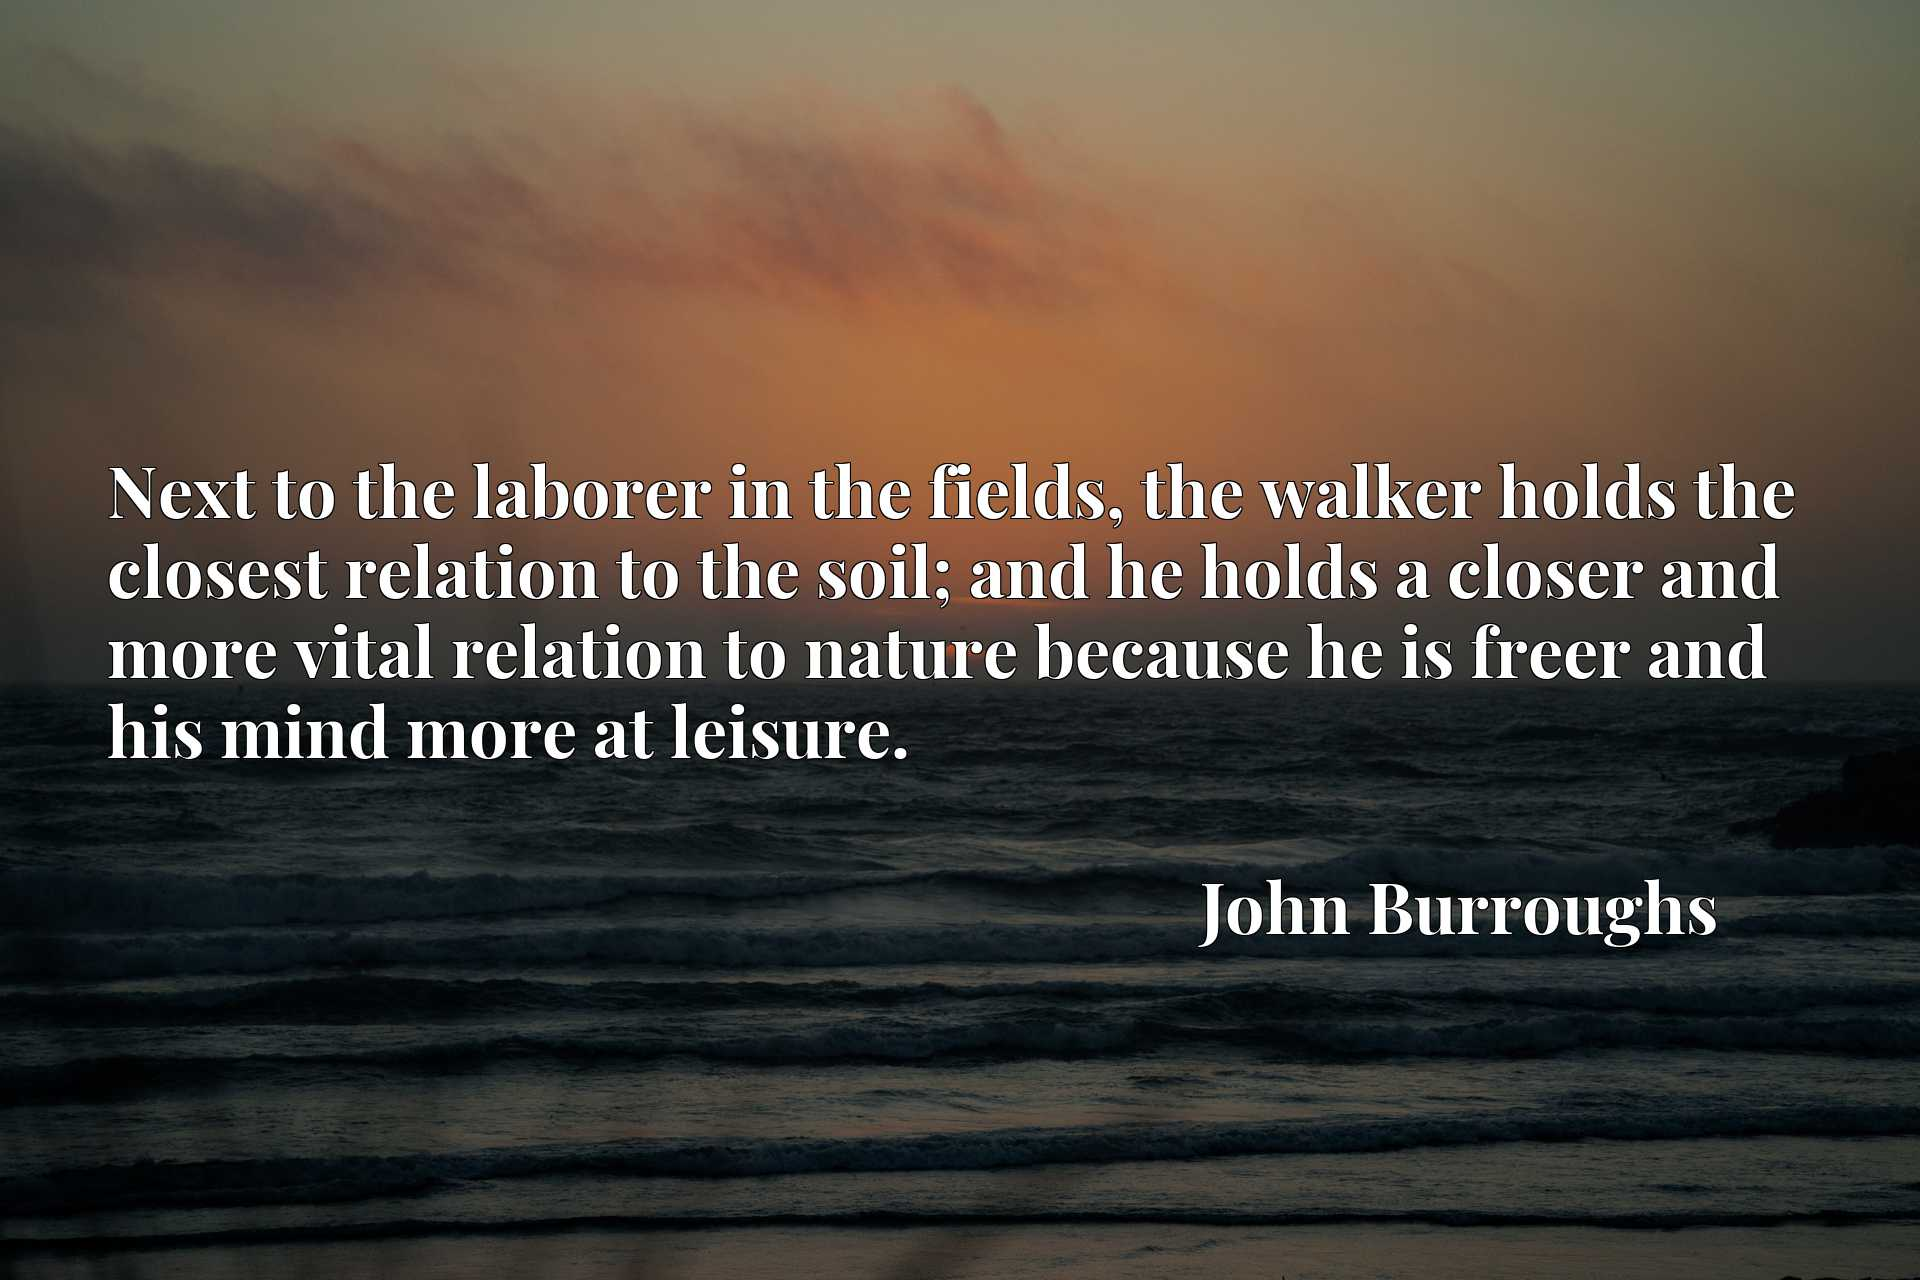 Next to the laborer in the fields, the walker holds the closest relation to the soil; and he holds a closer and more vital relation to nature because he is freer and his mind more at leisure.